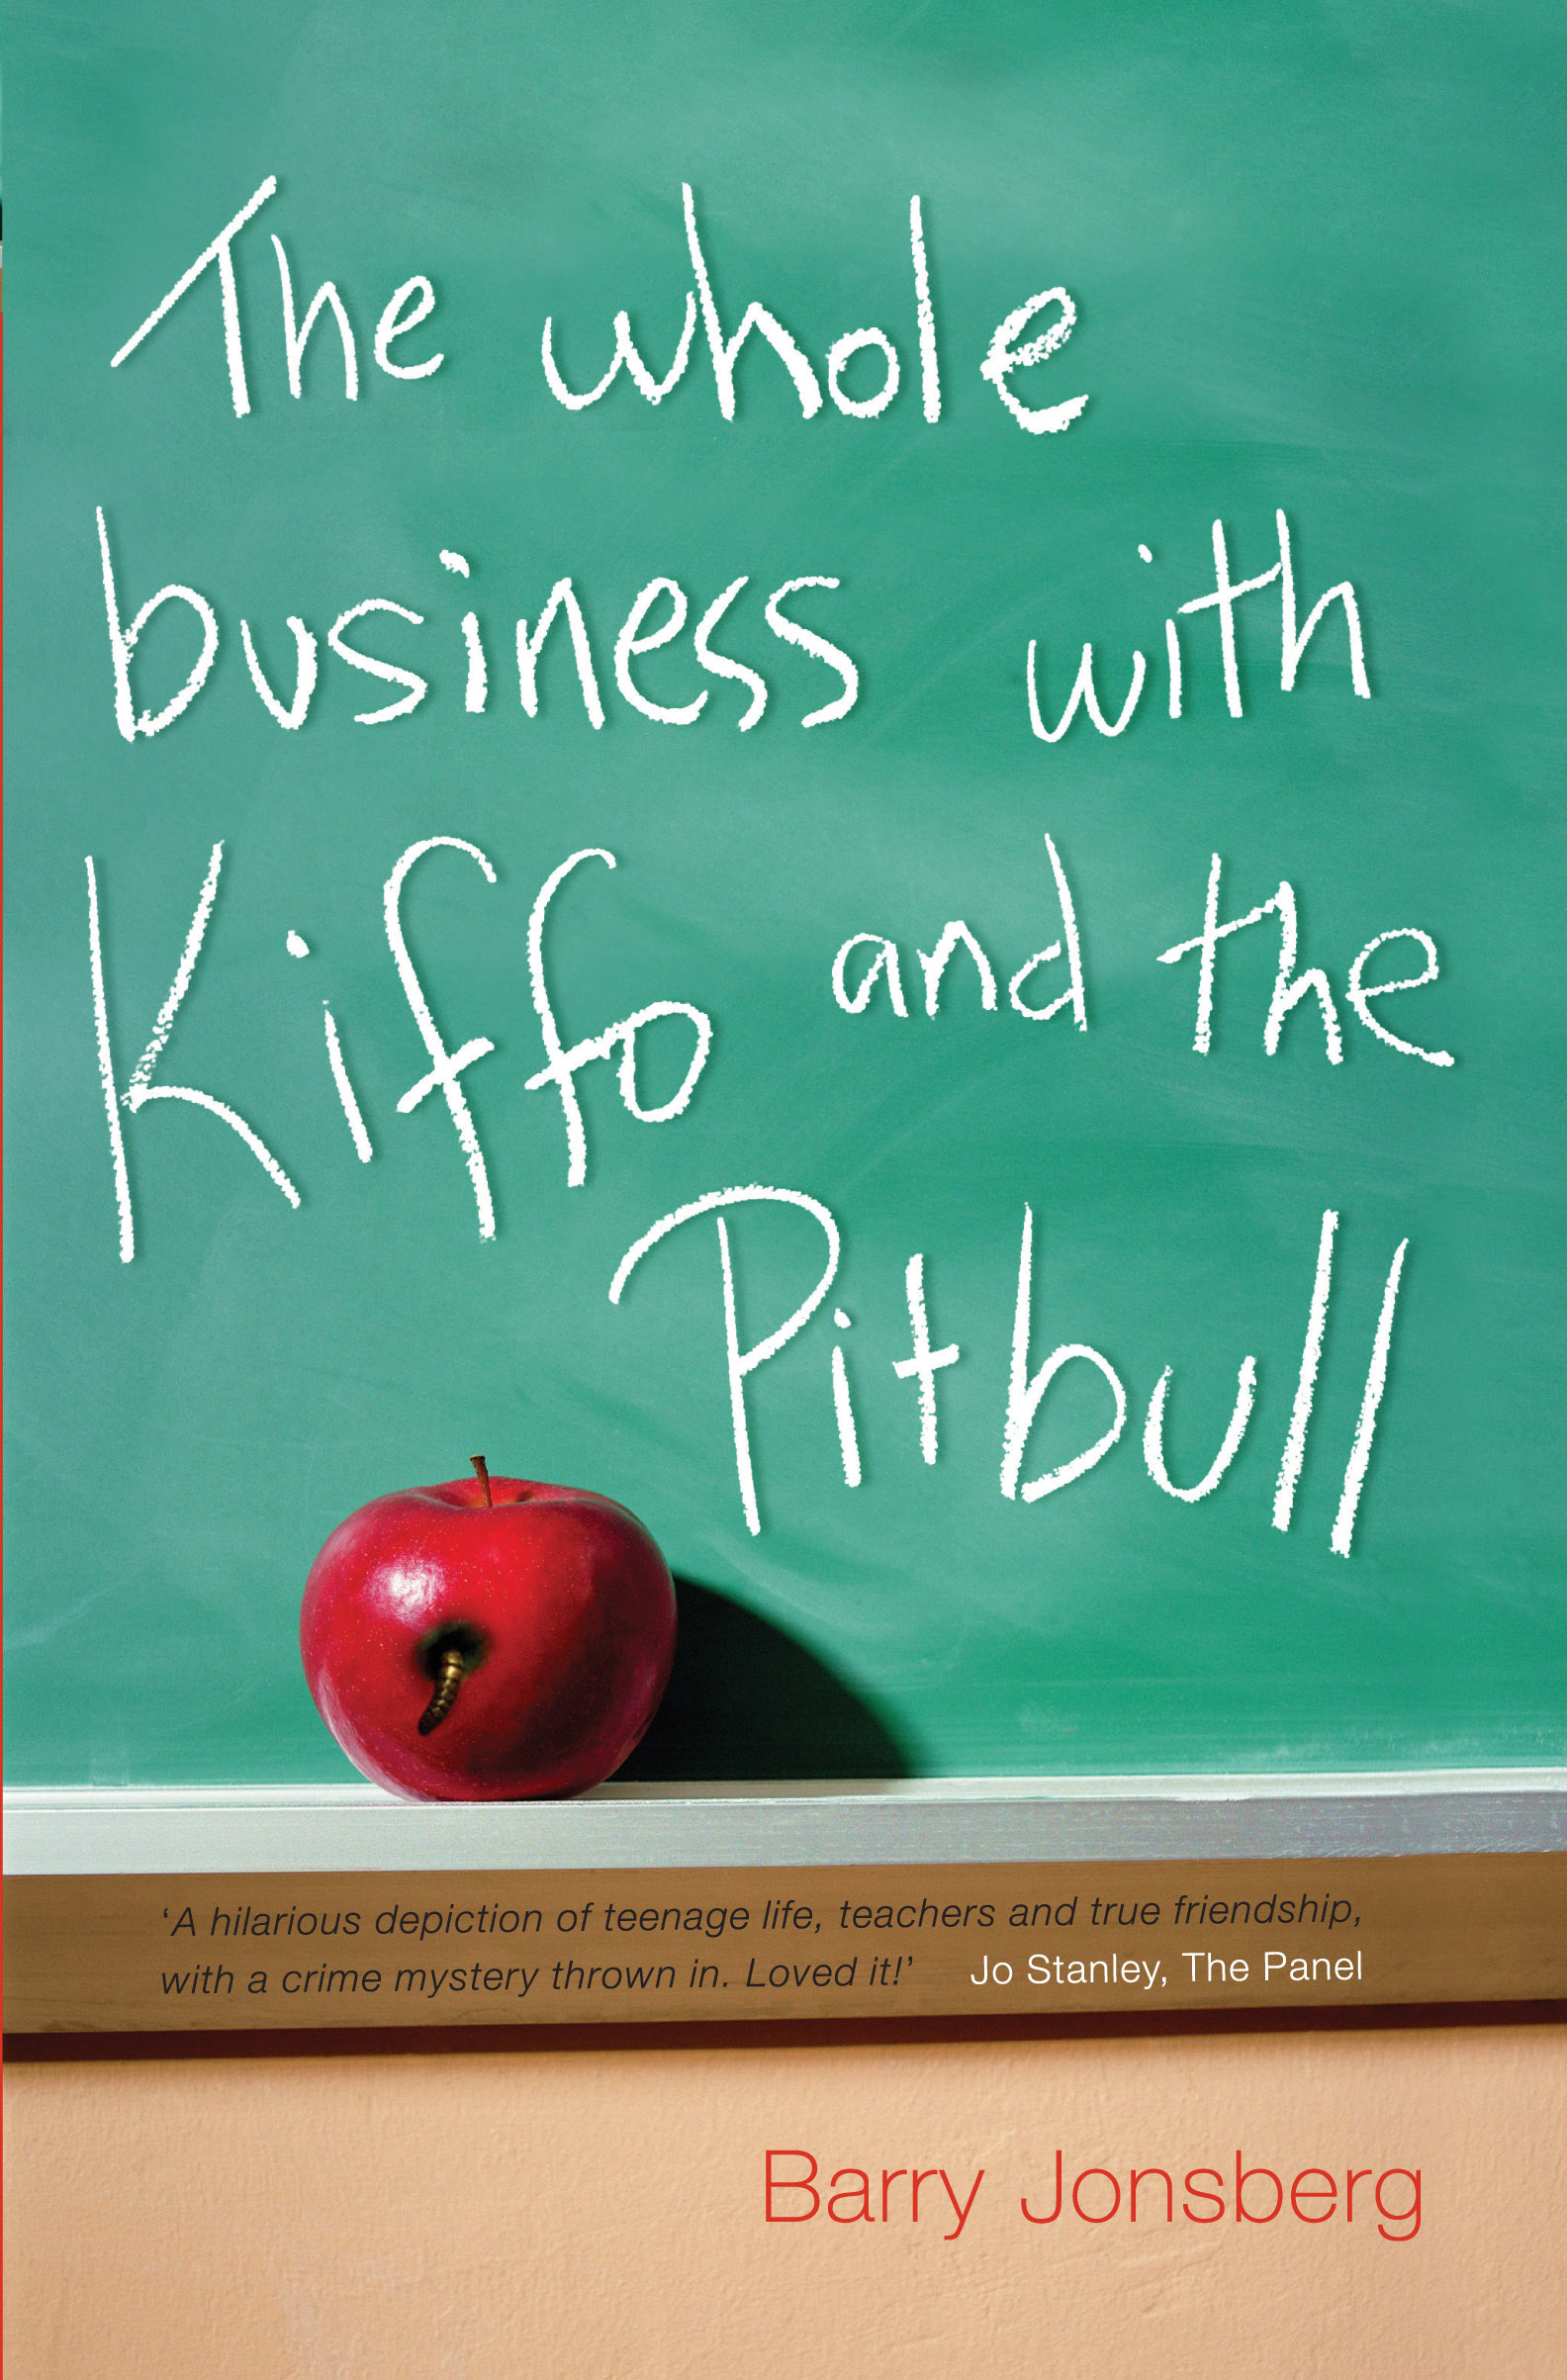 the whole business with kiffo and Get this from a library the whole business with kiffo and the pit bull [barry jonsberg.